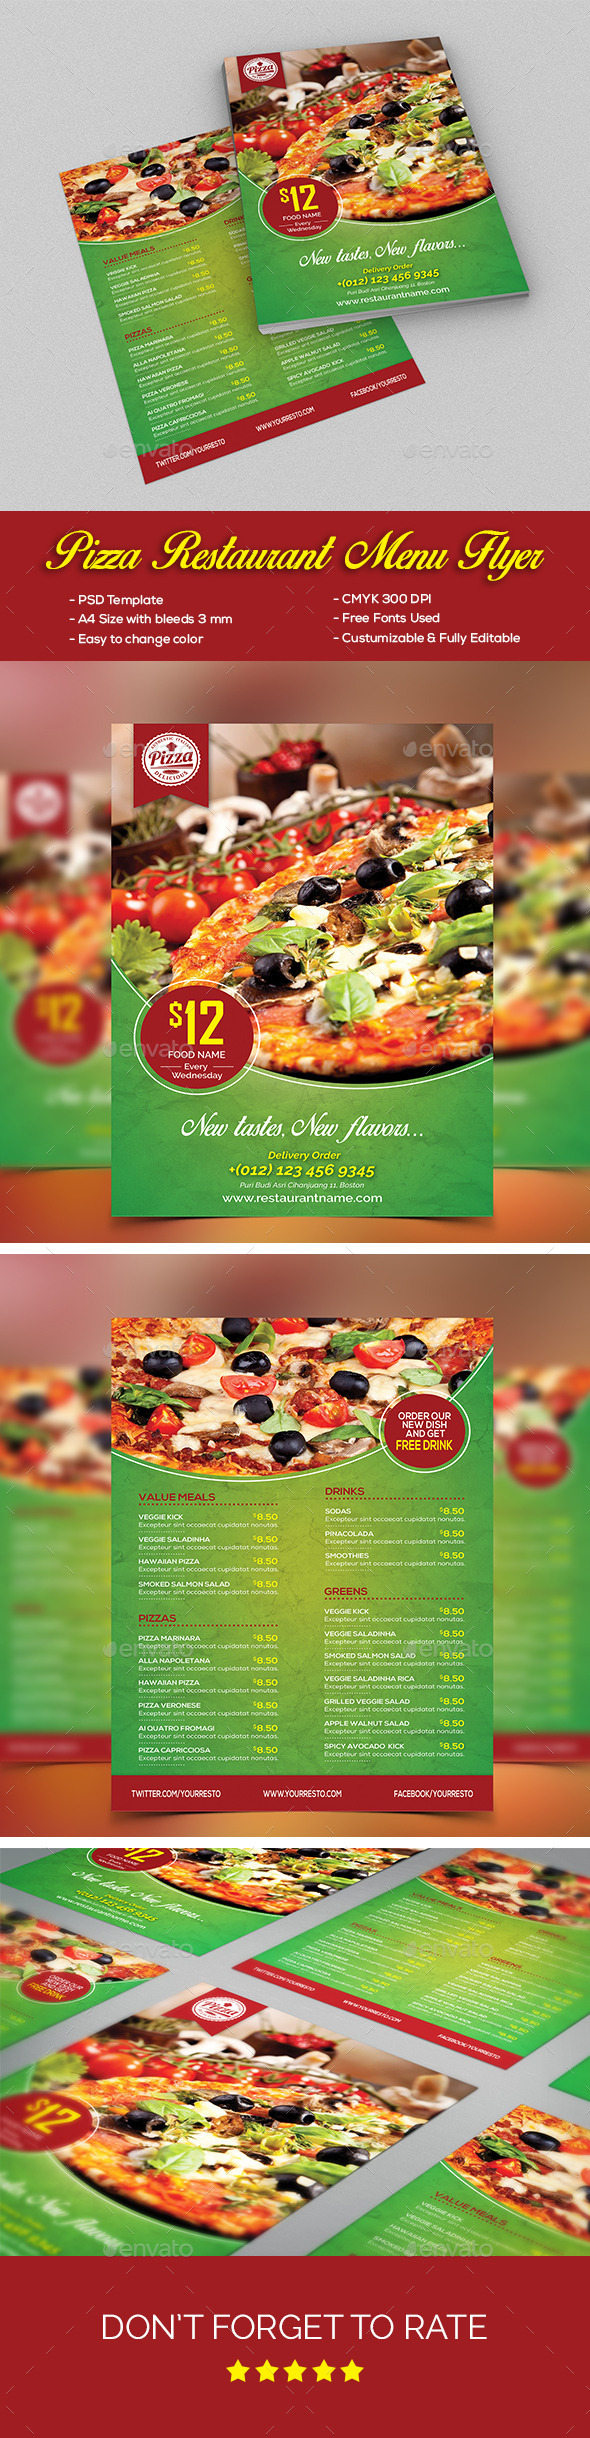 Pizza Restaurant Menu Flyer - Food Menus Print Templates